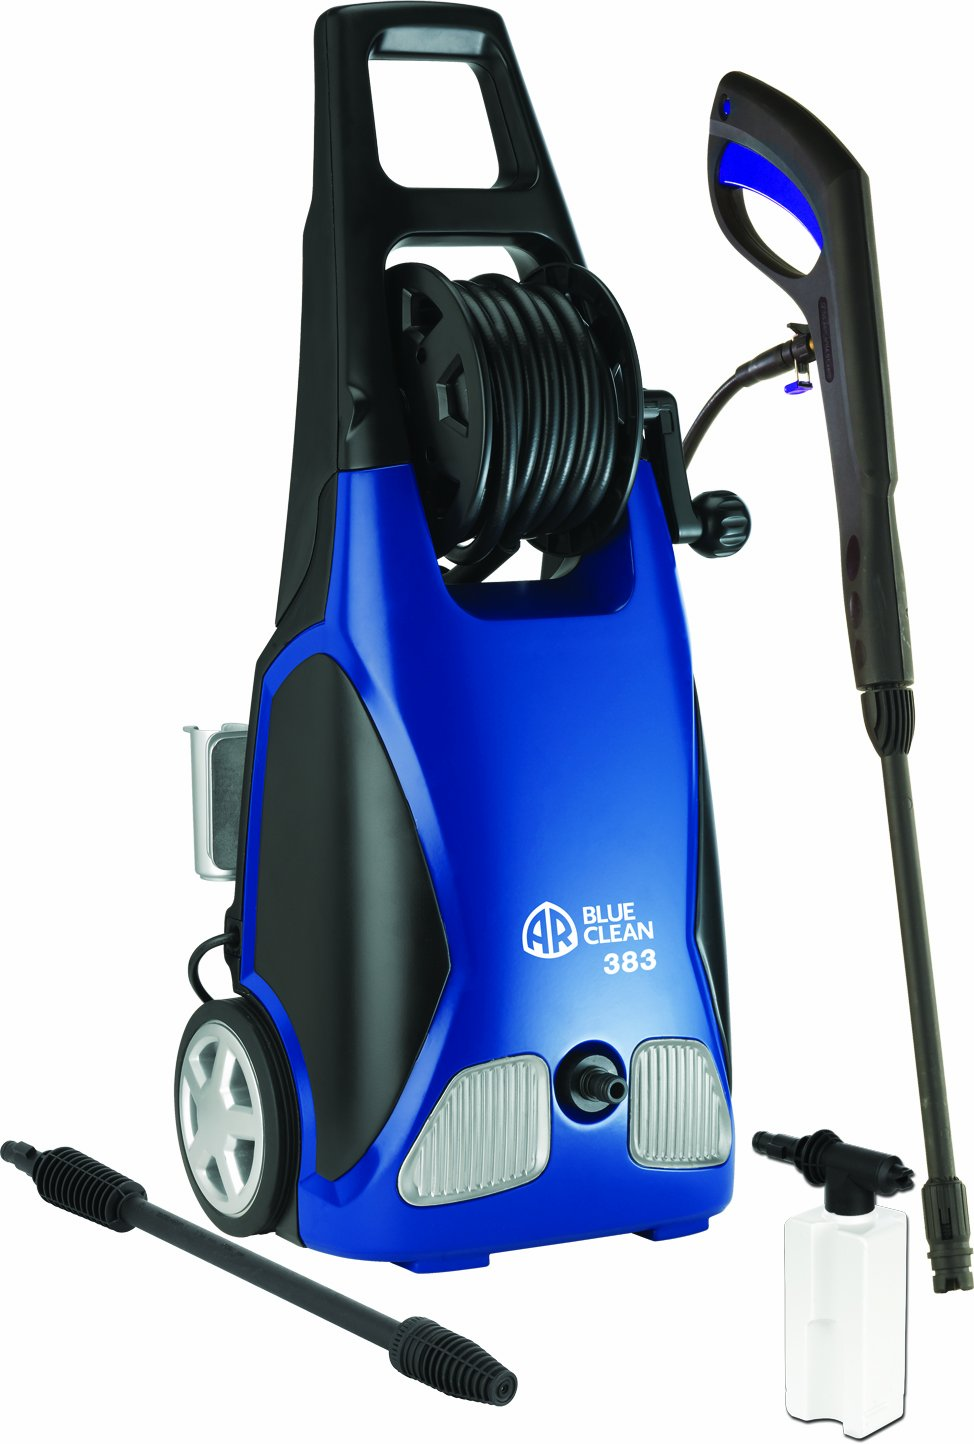 AR Blue Clean AR383 1900 PSI Electric Power Washer